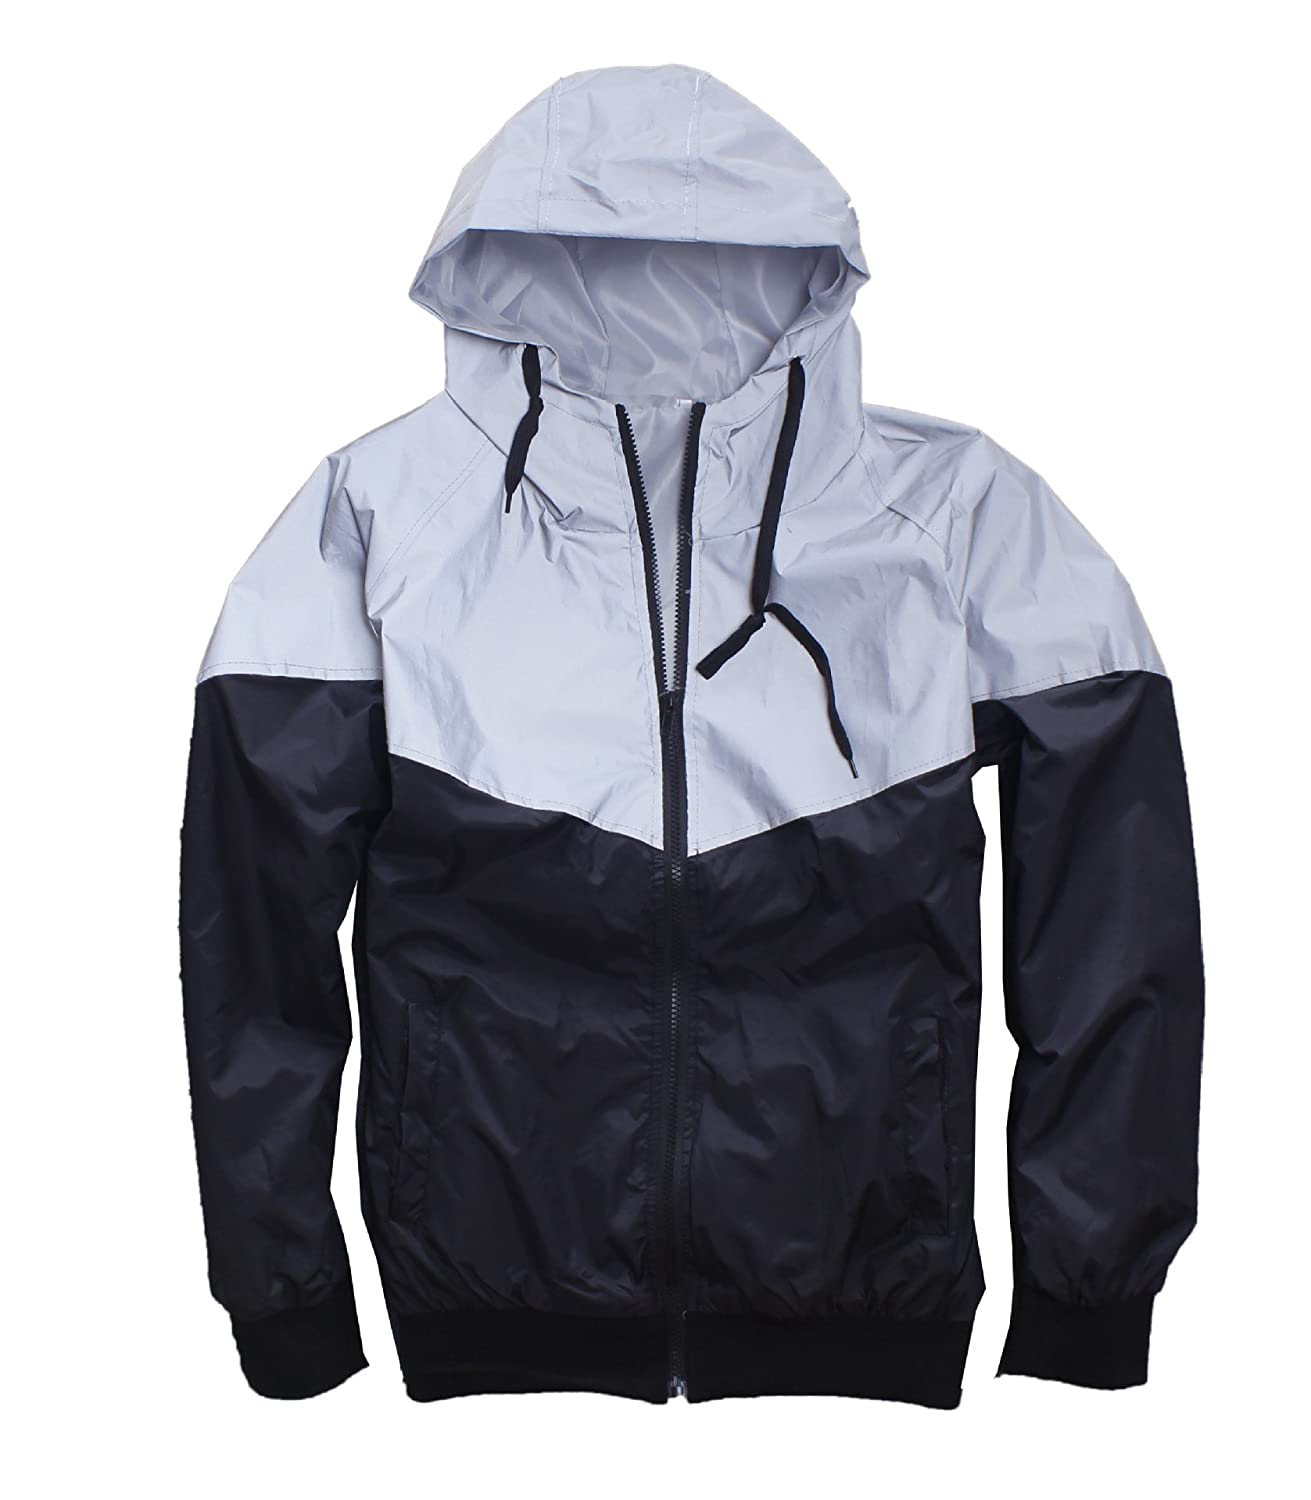 5698ba76 Men\'s Outerwear 3M Reflective Running Jacket for Running Cycling The Size  is Asian Size,it is smaller than US size. Please kindly check the size  below ...